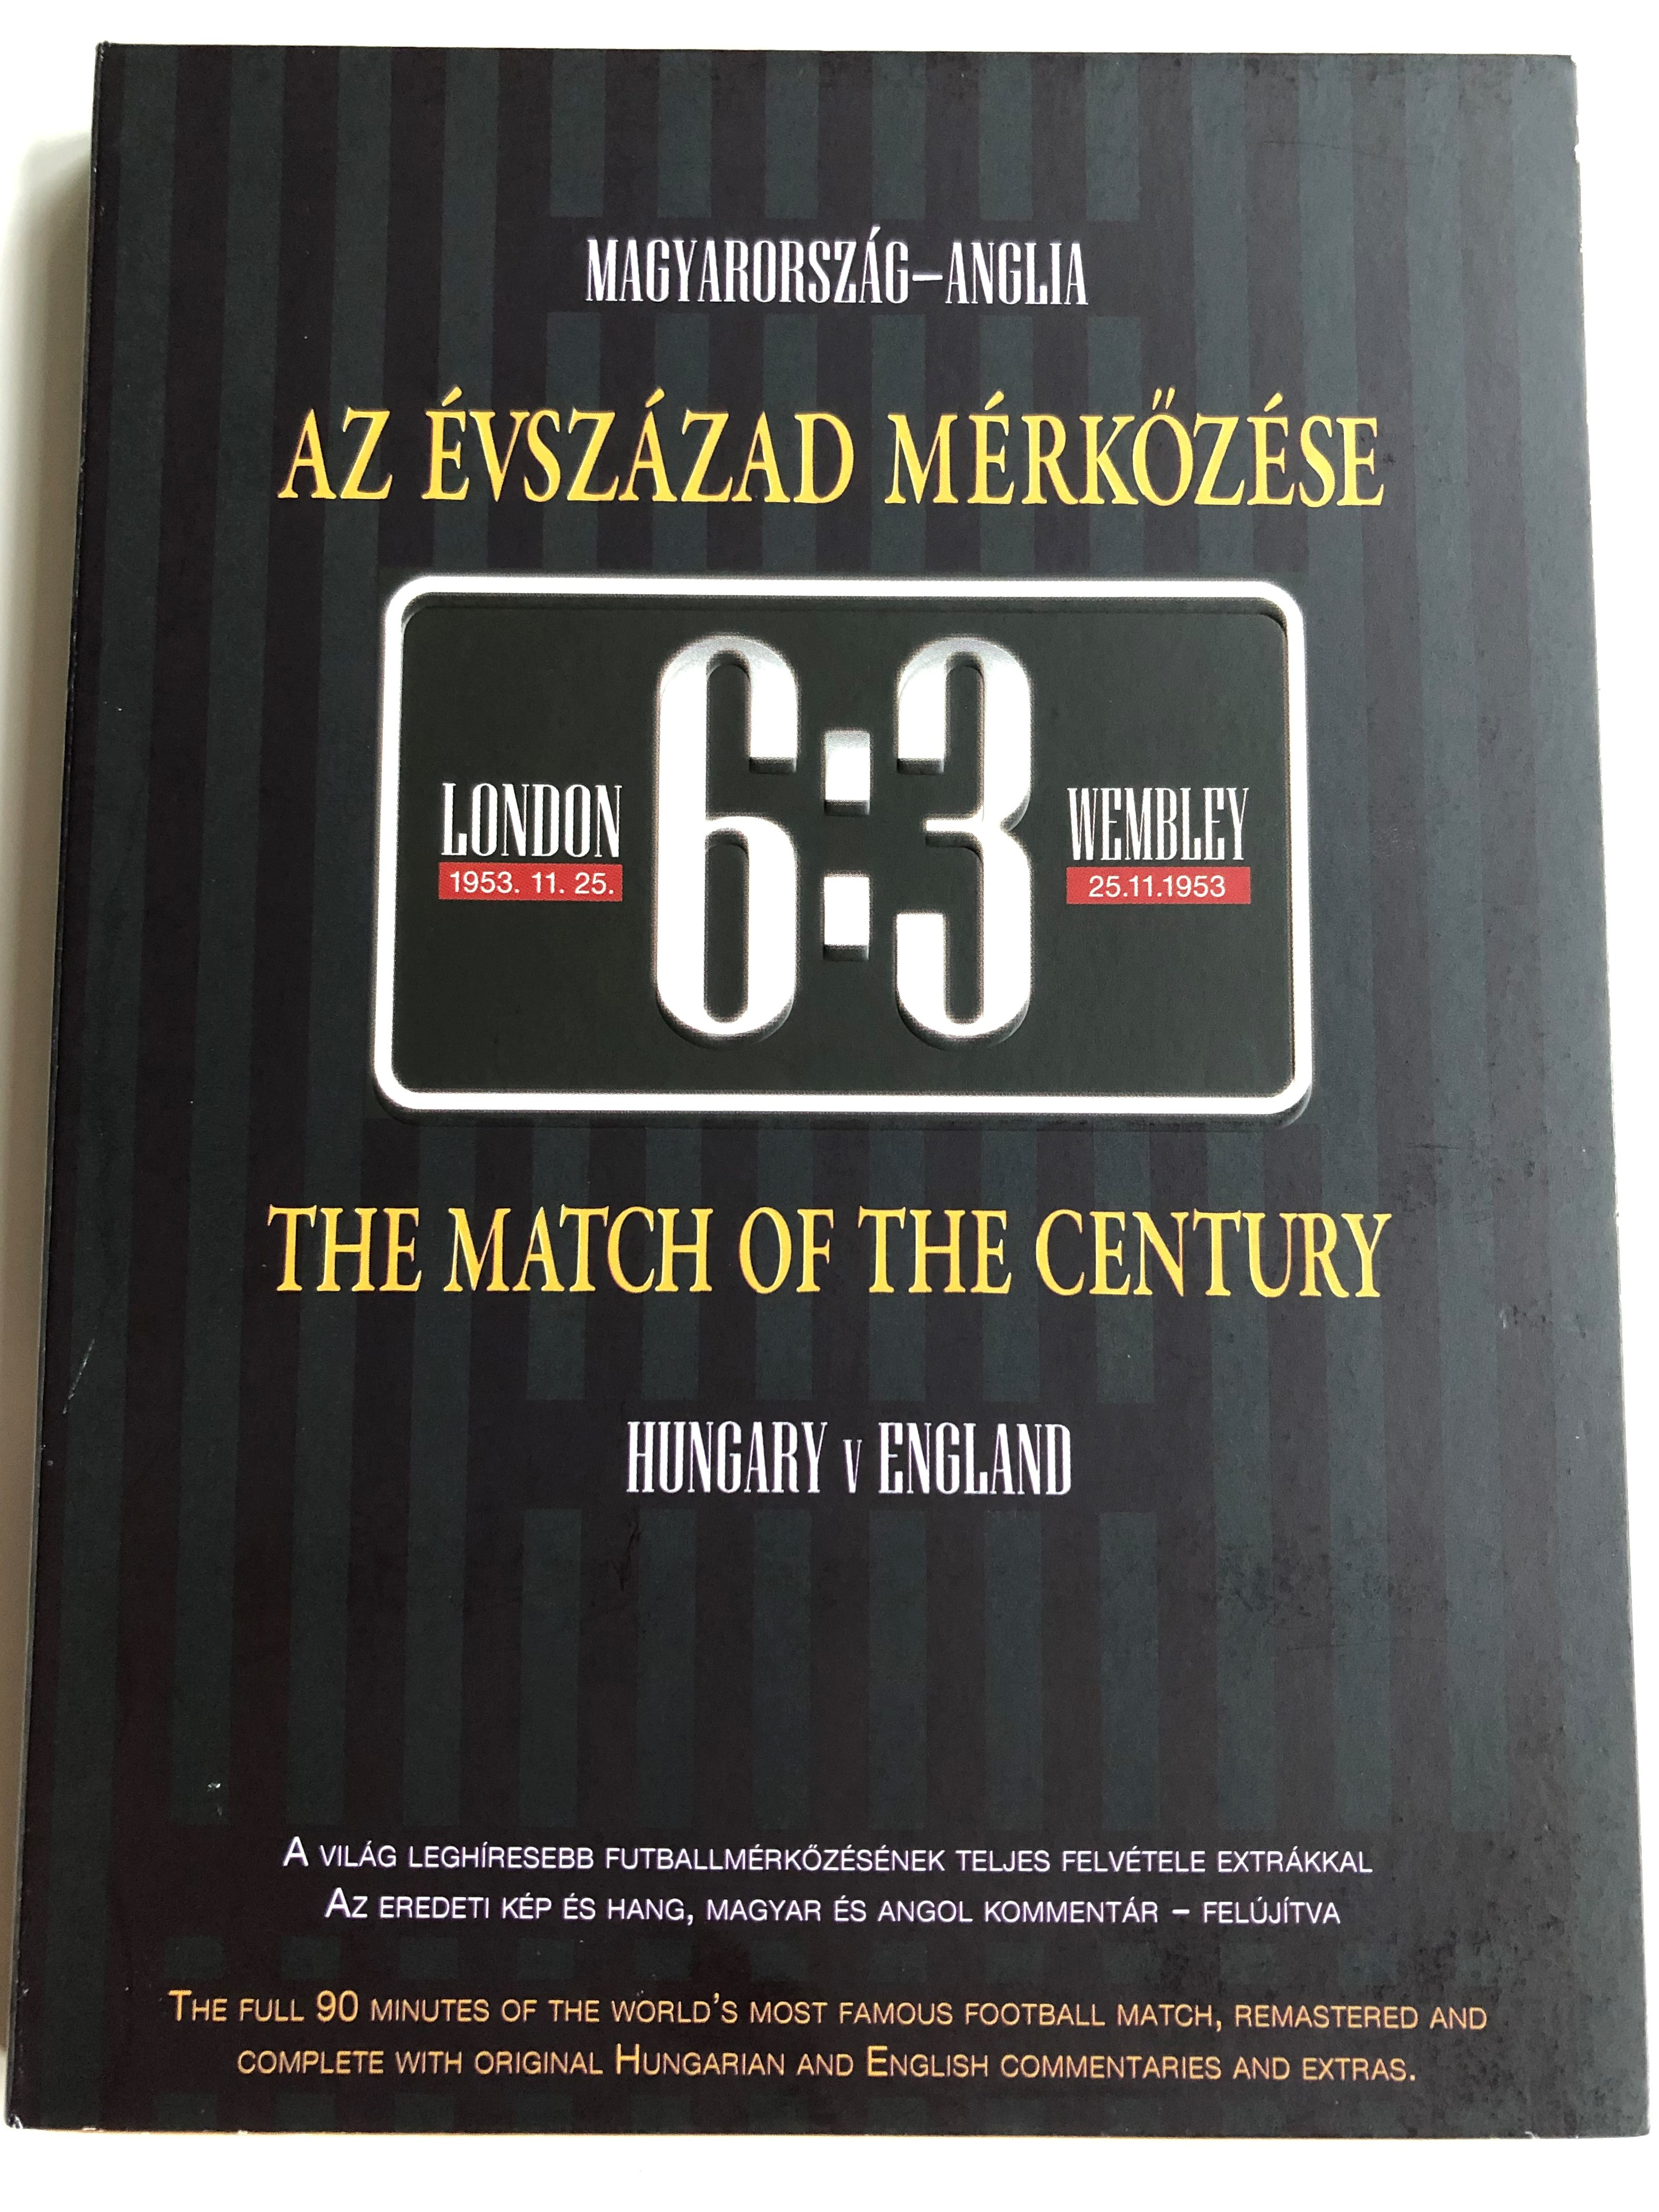 the-match-of-the-century-hungary-vs-england-dvd-az-vsz-zad-m-rk-z-se-magyarorsz-g-6-3-anglia-1.jpg